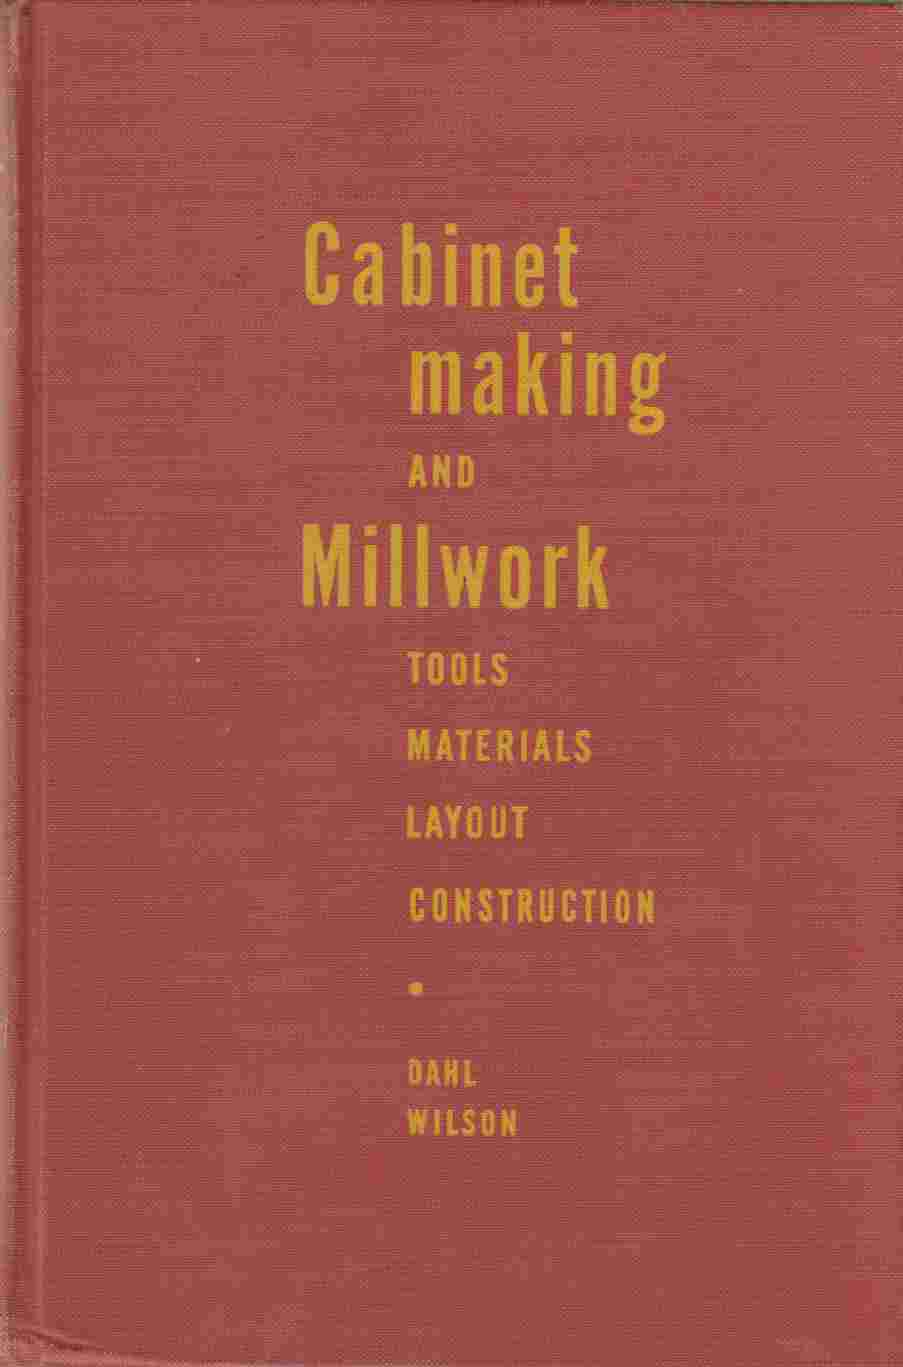 Image for Cabinetmaking and Millwork:  Tools - Materials - Construction - Layout